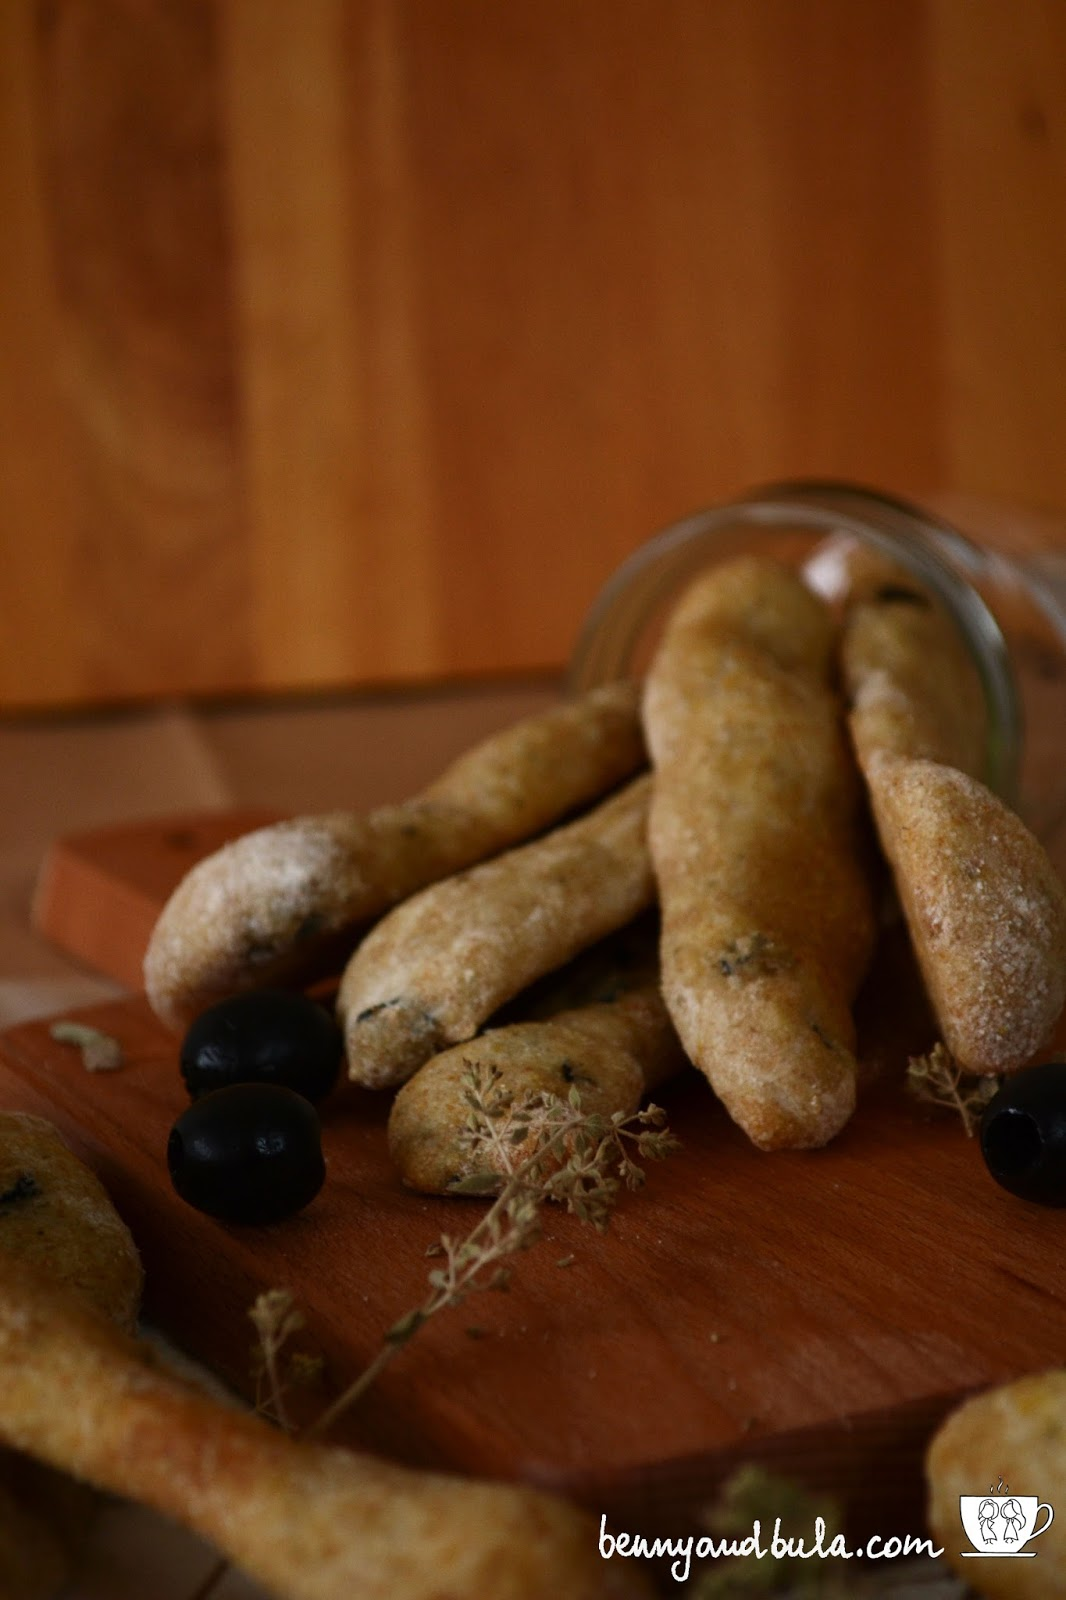 ricetta grissini morbidi con olive limone origano/soft olives lemon origan breadsticks recipe